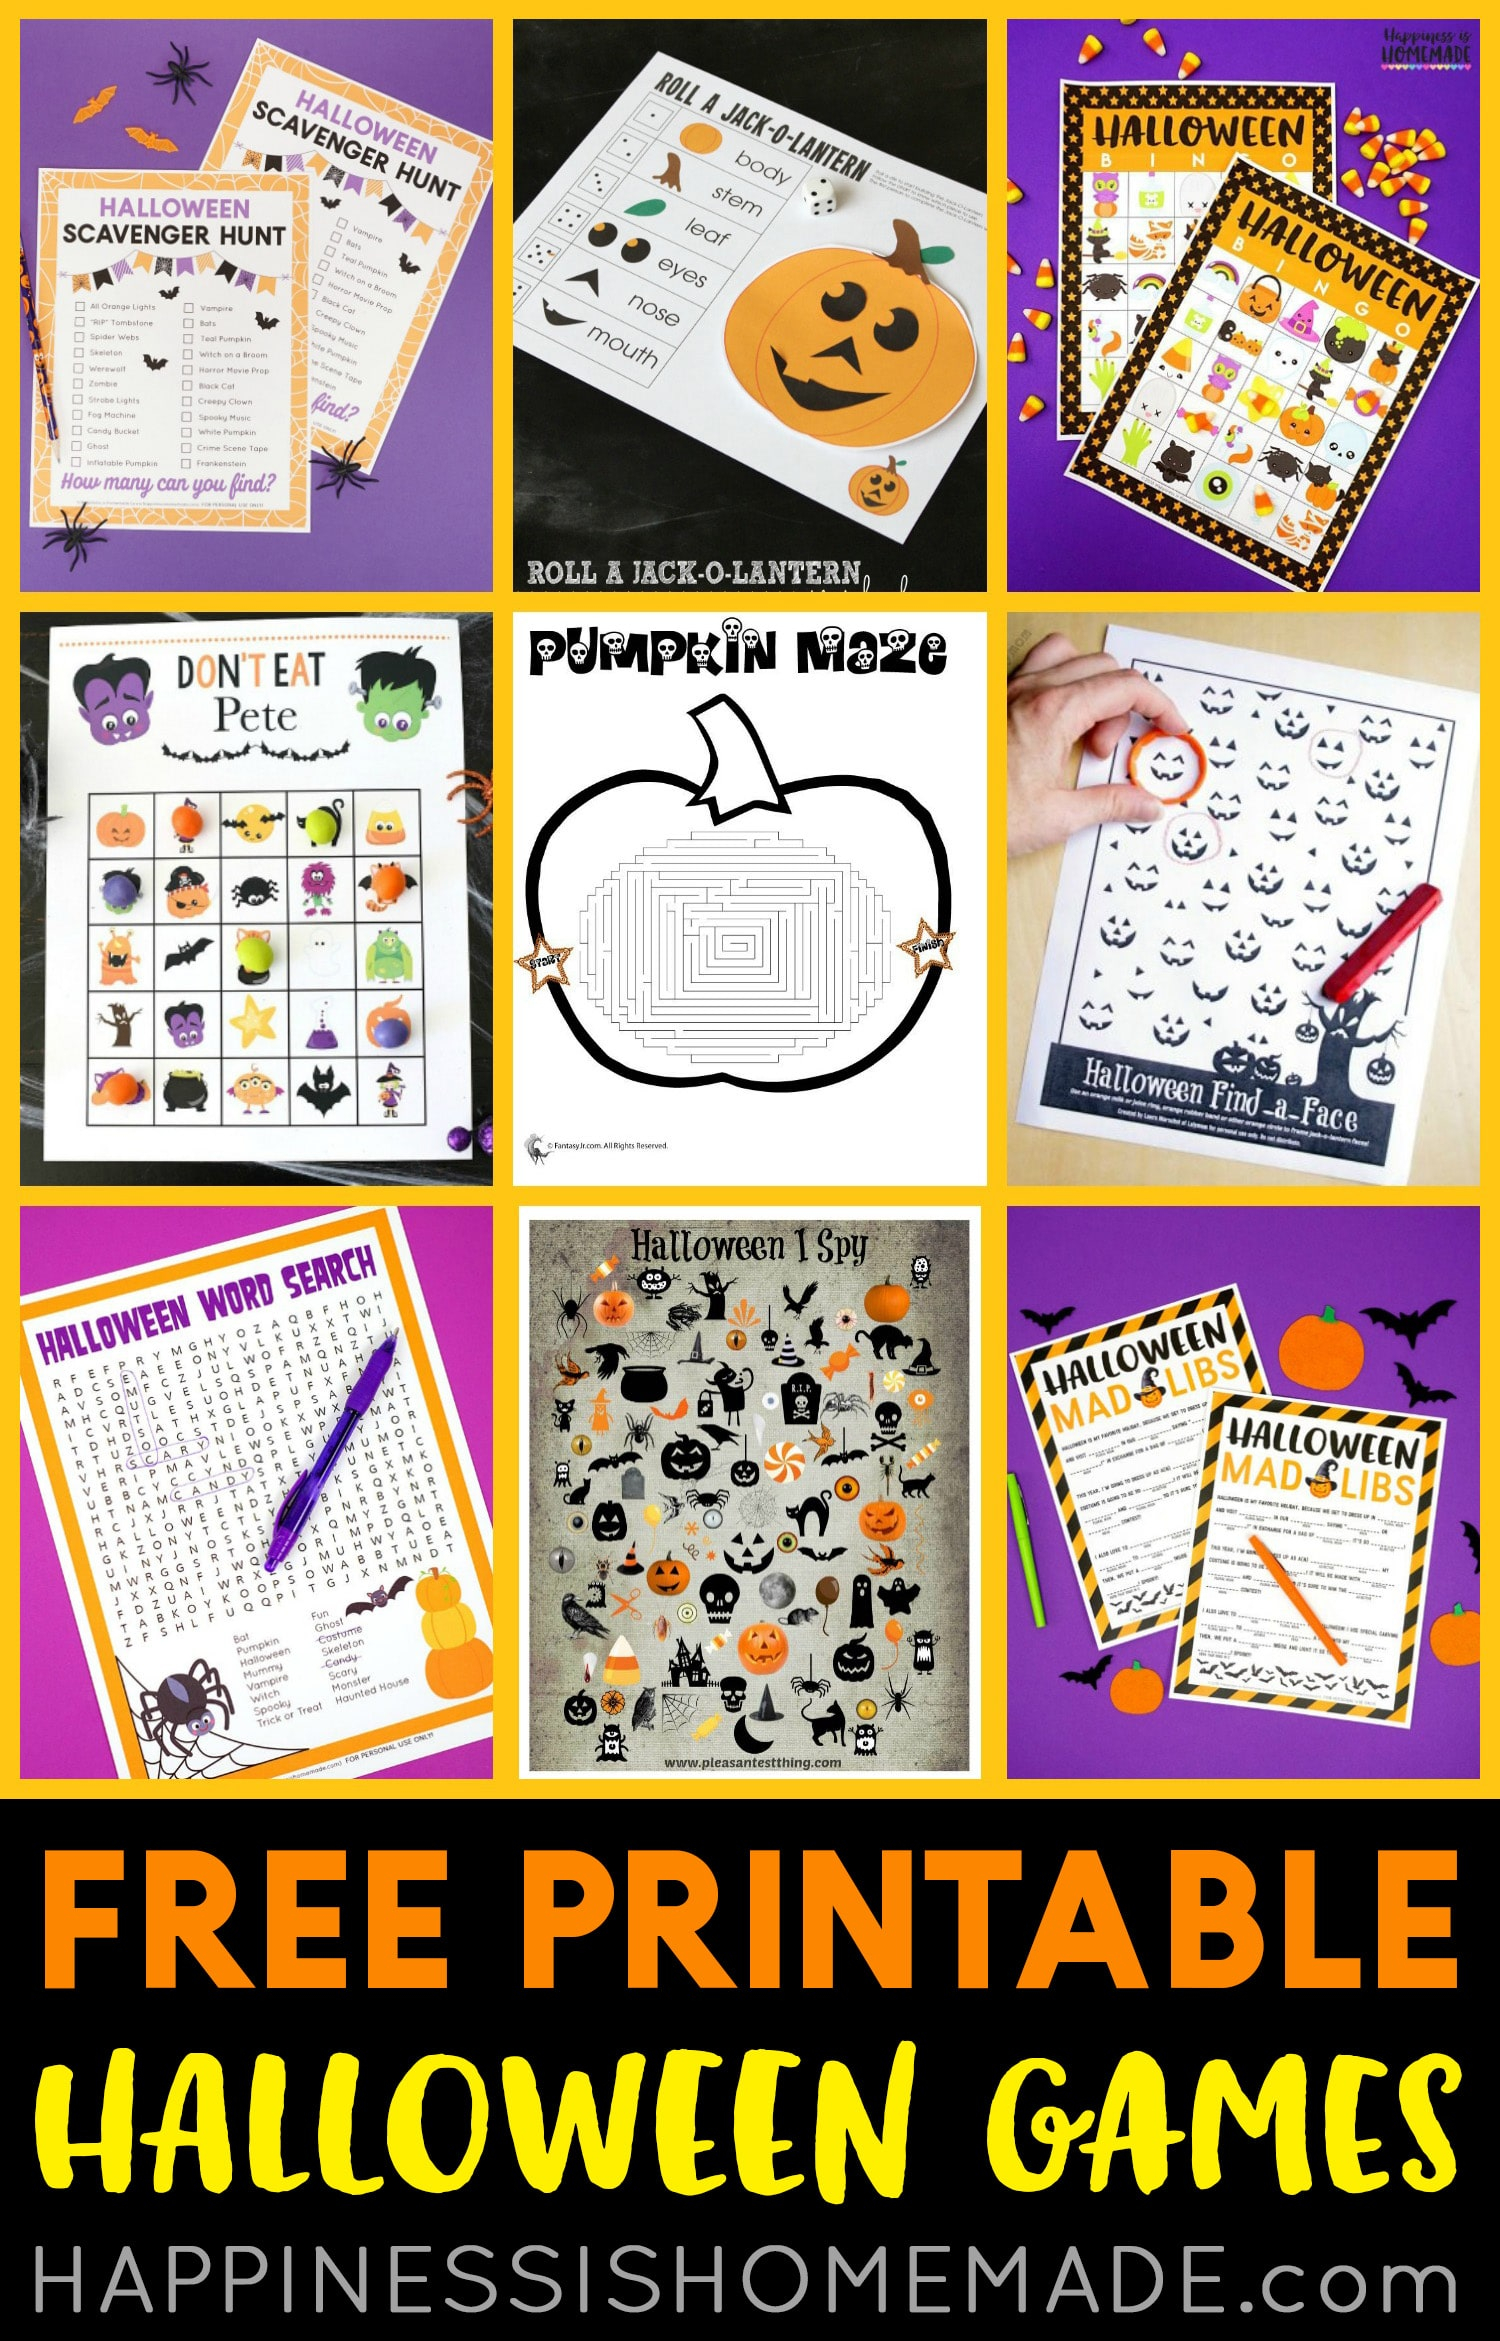 Free Printable Halloween Games - Happiness Is Homemade